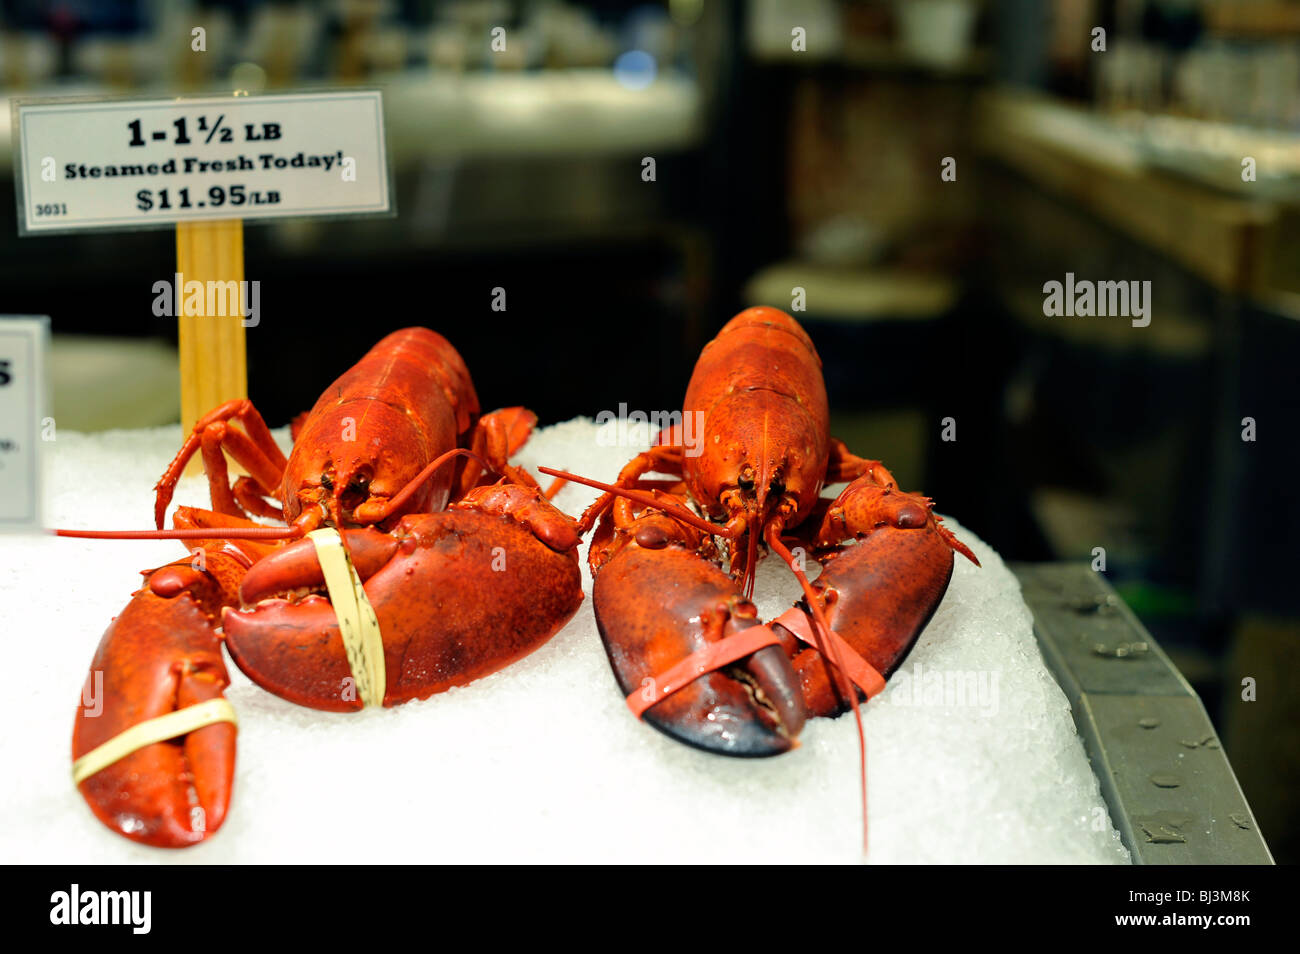 Steamed Lobsters - Stock Image